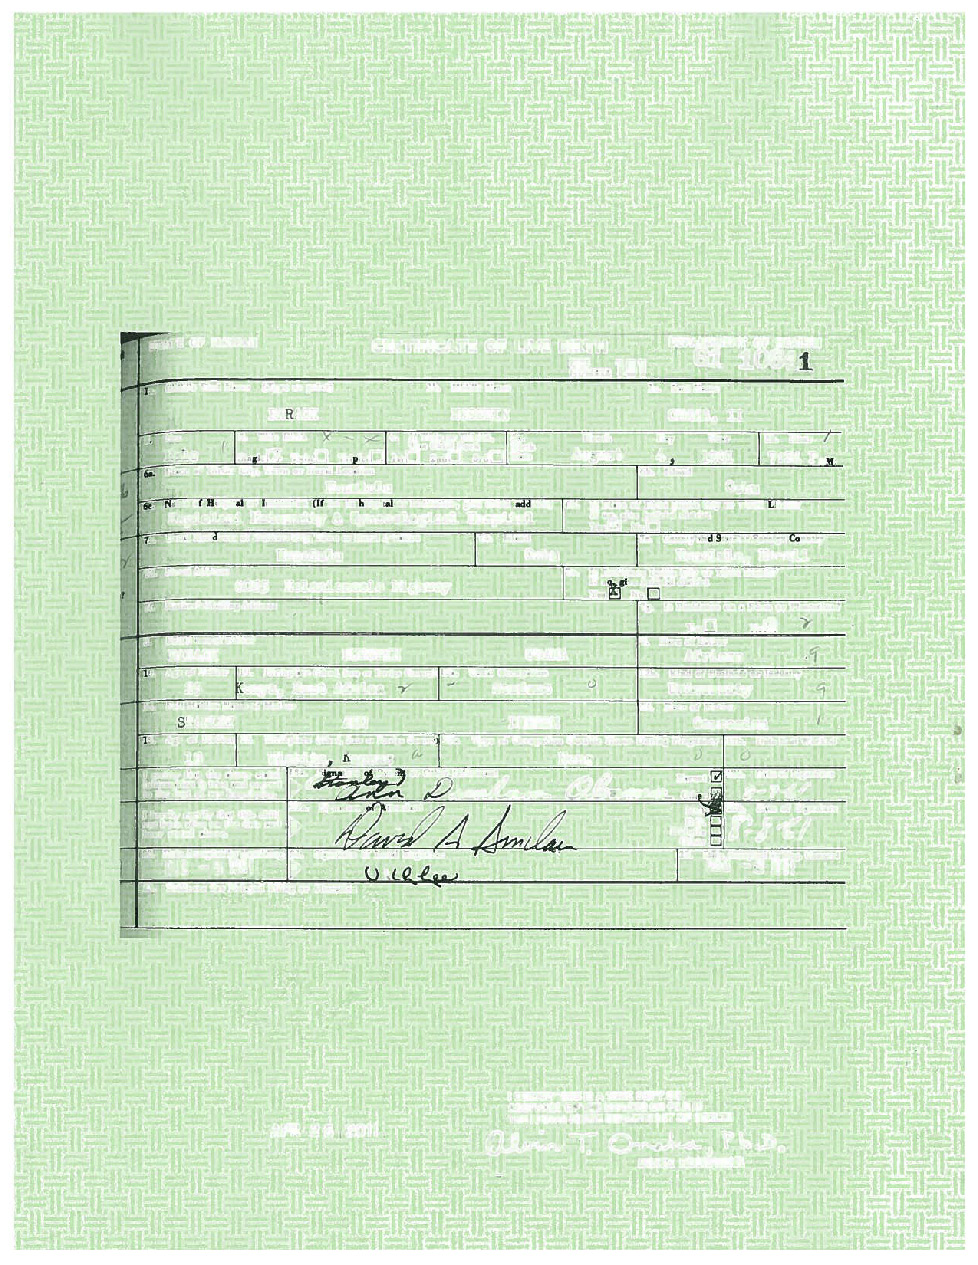 Background layer of Obama birth certificate, showing security paper, signatures and form lines